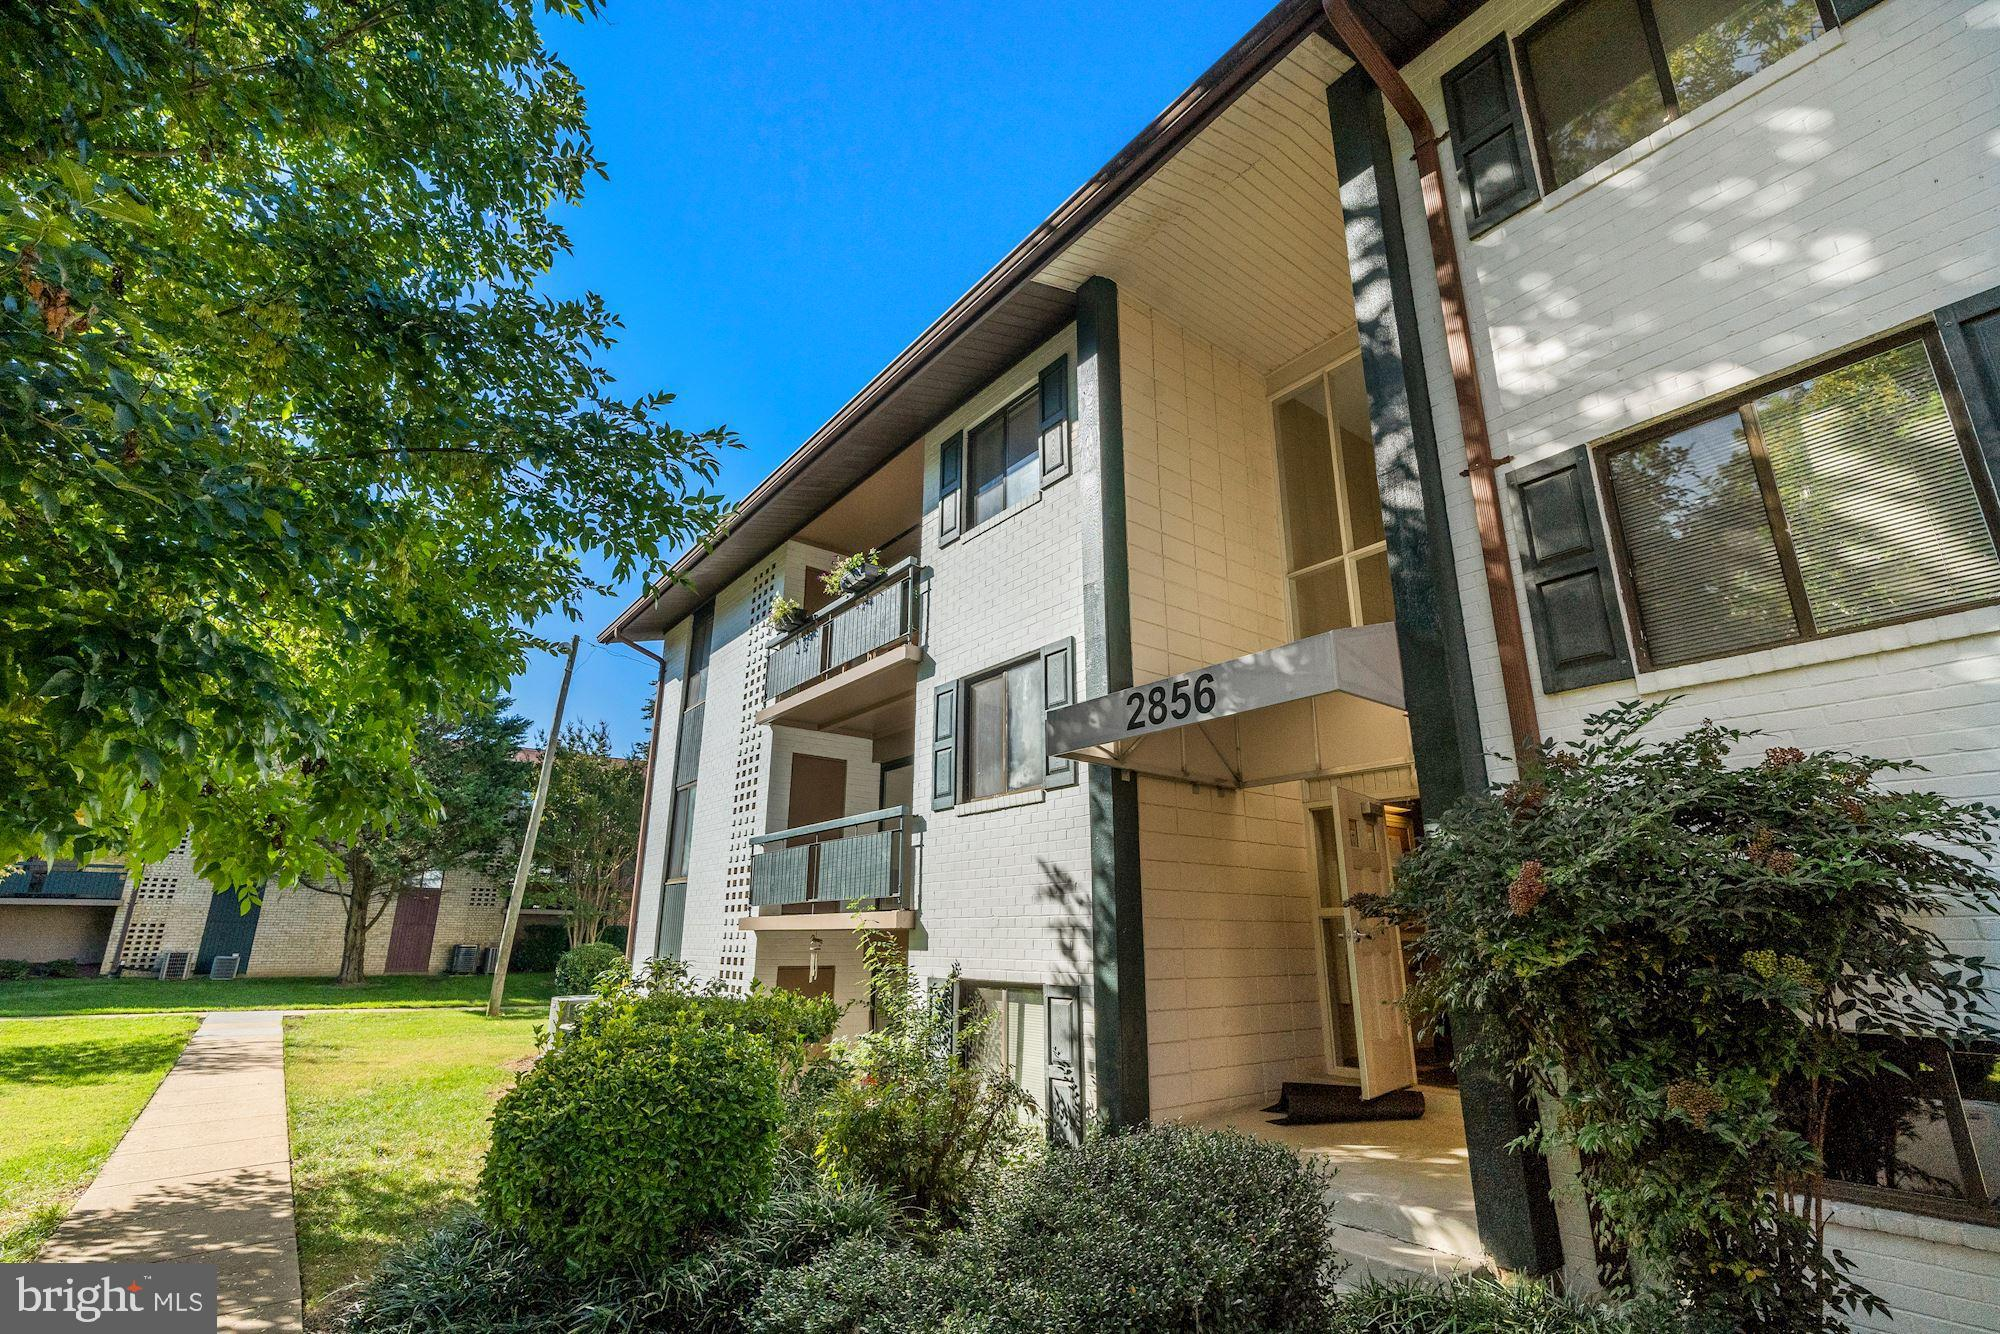 JUST LISTED! Light filled 1 bedroom, 1 bathroom condo located in Dover Park Condominiums.  Kitchen with all new stainless steel appliances. New stackable washer and dryer. Huge walk-in closet. Community Pool.   Steps to the Lee Highway Metro Bus Stop and  minutes to Dunn Loring Metro Station. Easy access to I-495 Beltway, Rt 66, Rt 50 and Lee Hwy for quick access to Mosaic, Tysons Corner, Arlington, Fairfax and Washington!